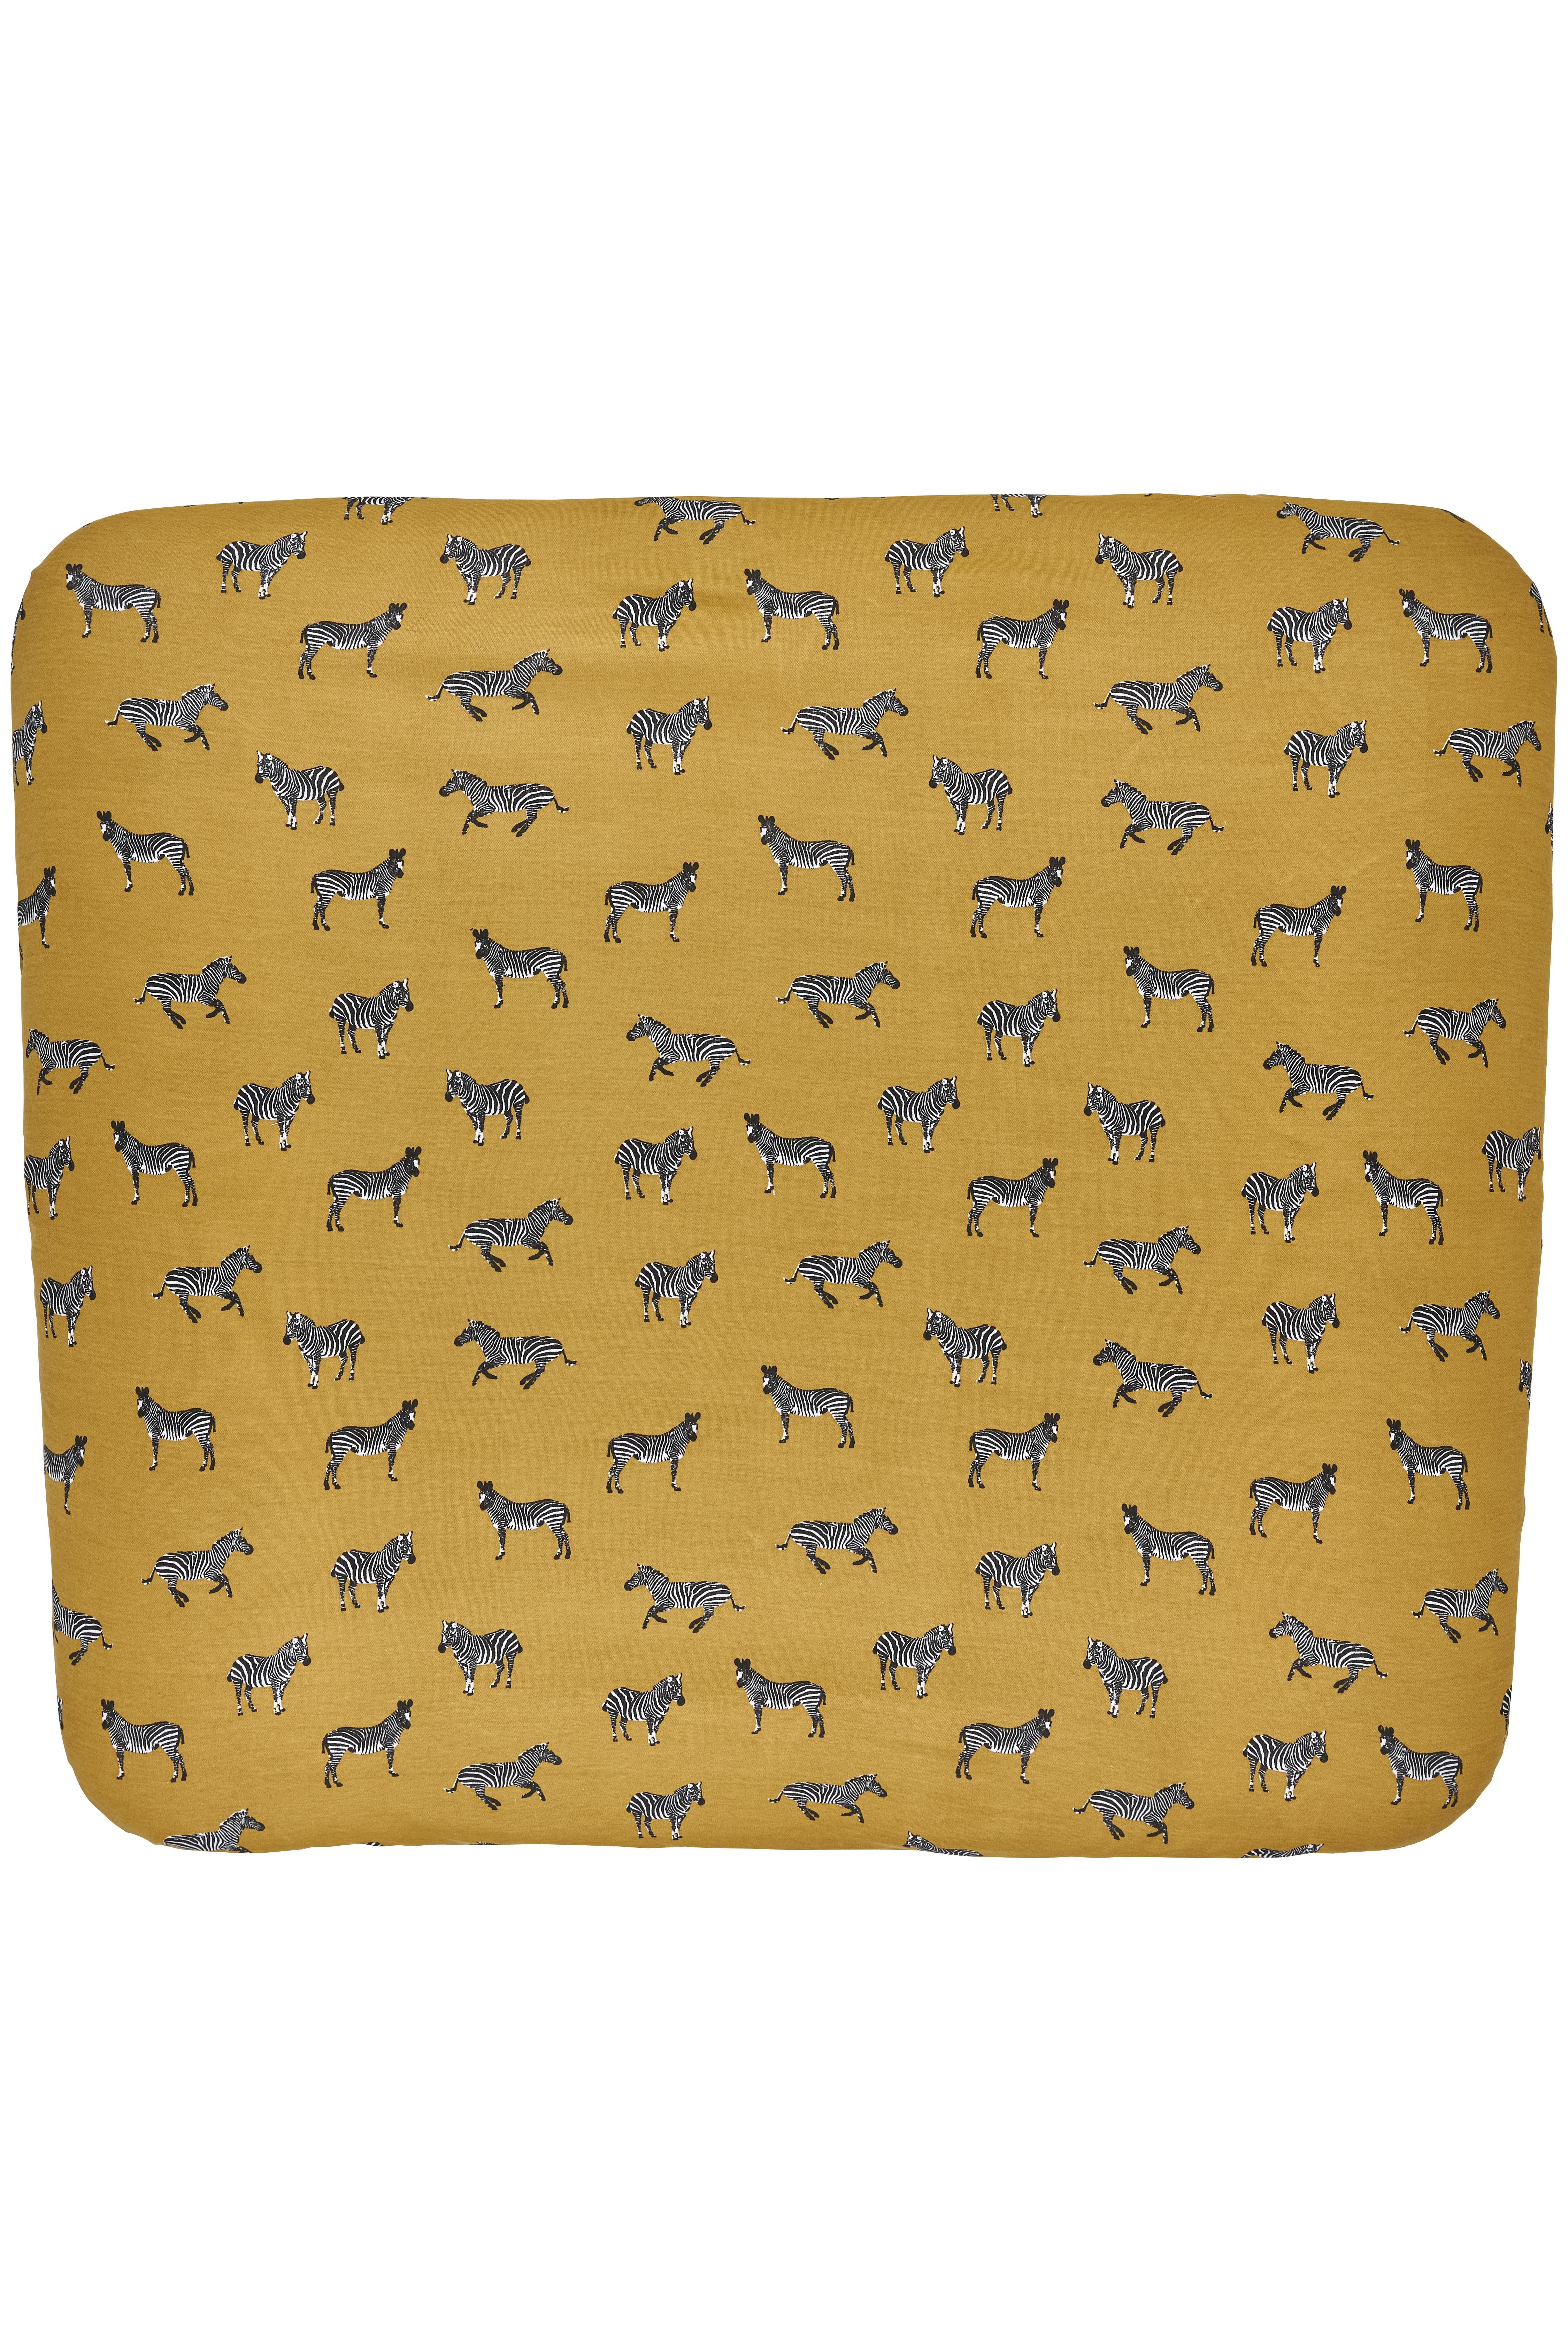 Aankleedkussenhoes 3K Zebra Animal - Honey Gold - 85x75cm